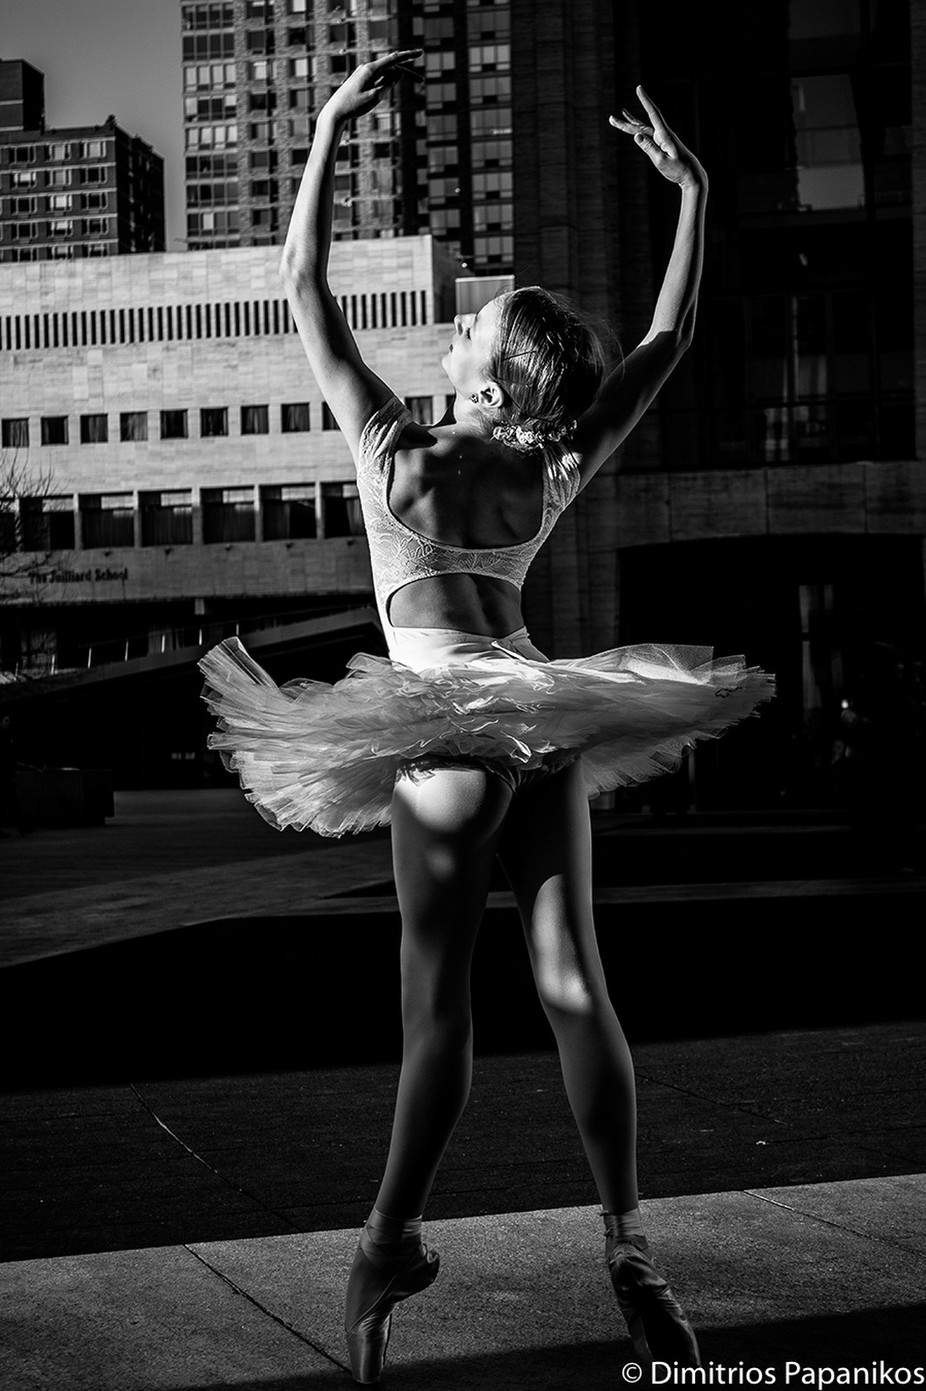 Dancing Girl  by dimipapanikos - Image Of The Month Photo Contest Vol 31